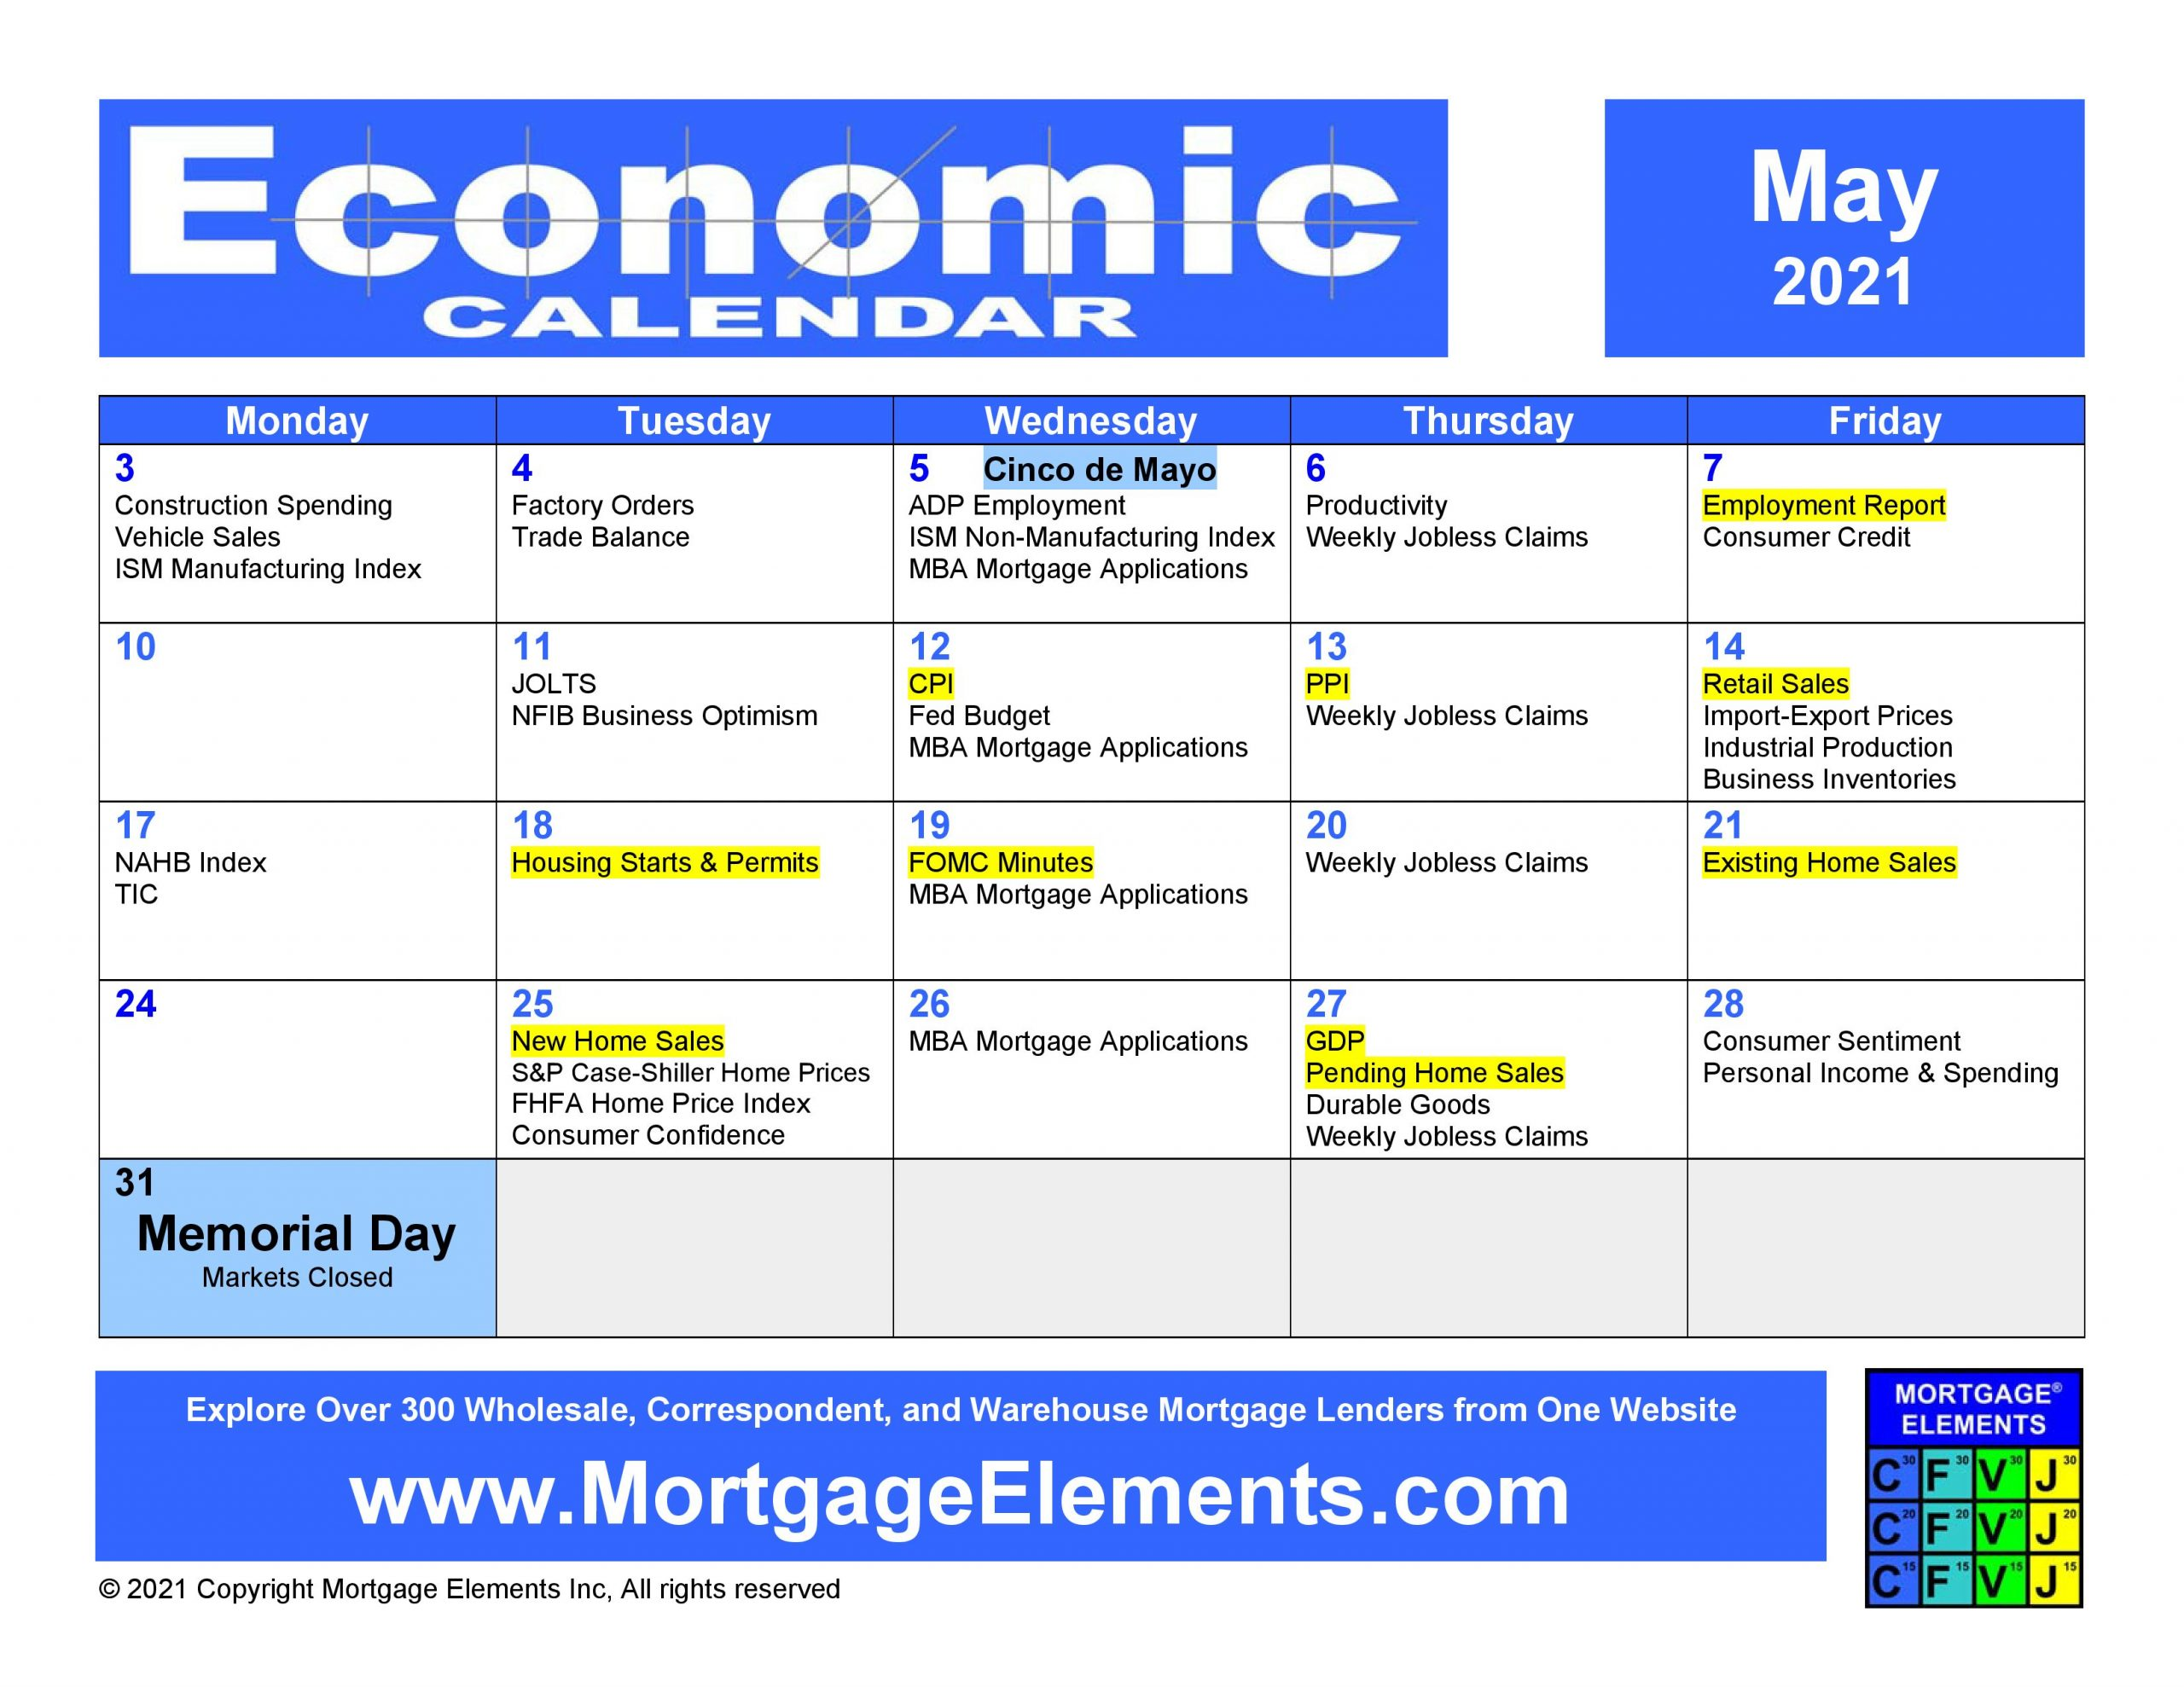 Mortgage Economic Calendar May 2021 from Mortgage Elements